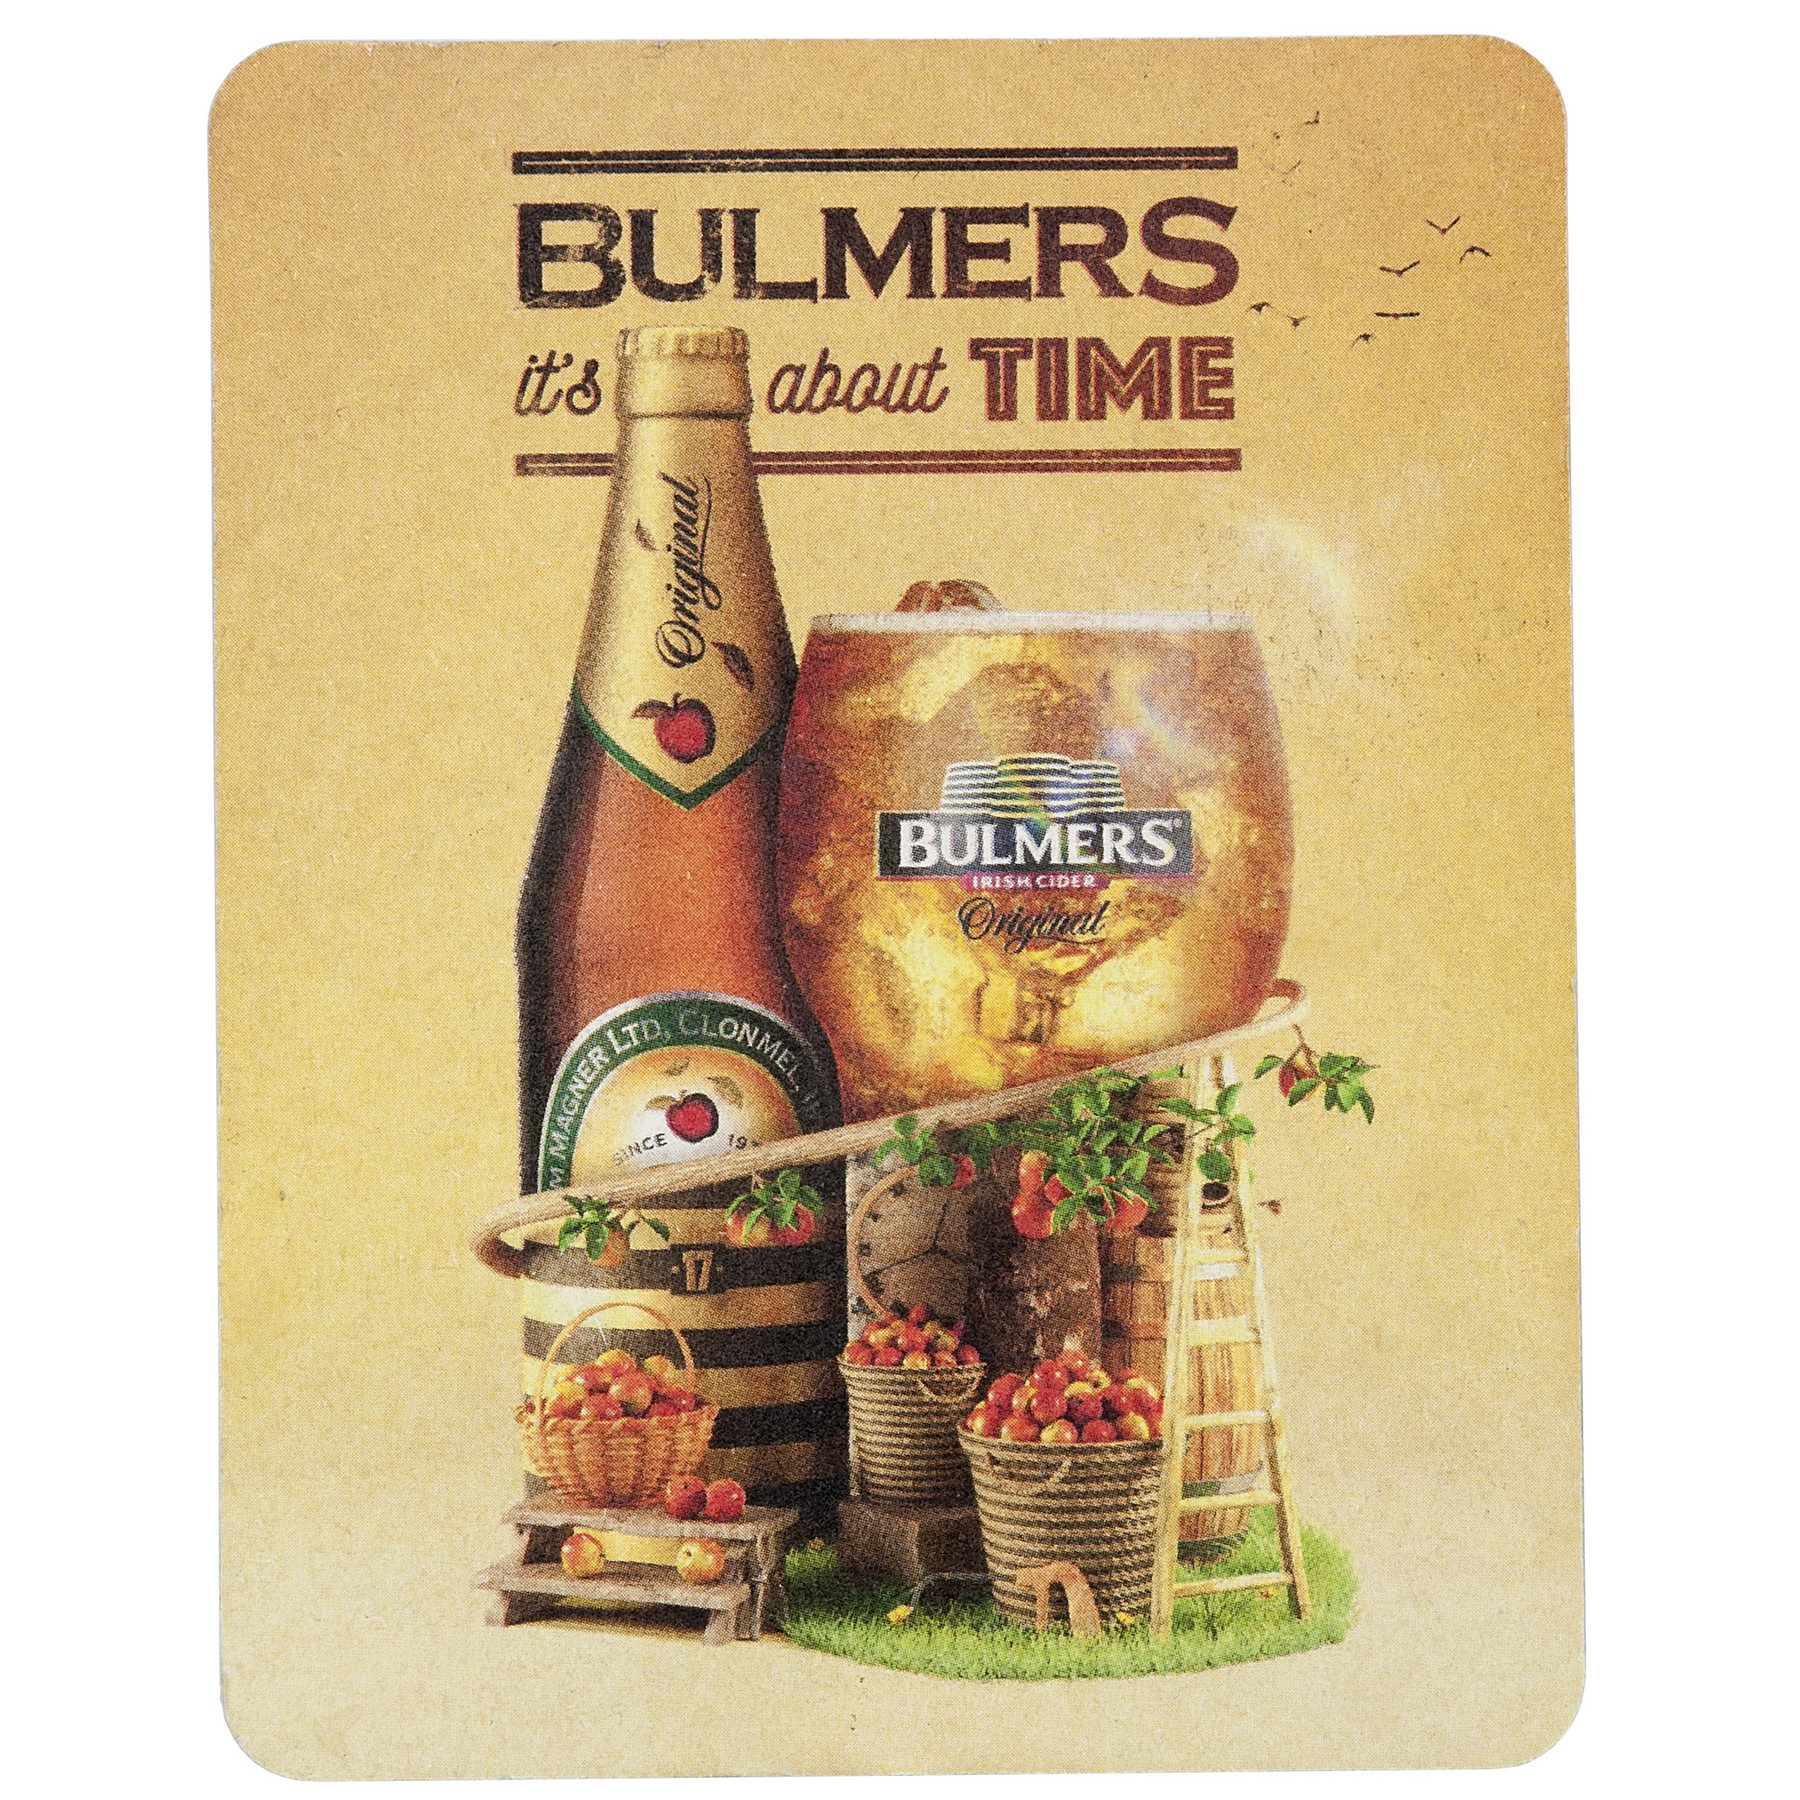 Full Color Process 60 Point Rectangle Pulp Board Coaster, 799-K, Full Colour Imprint